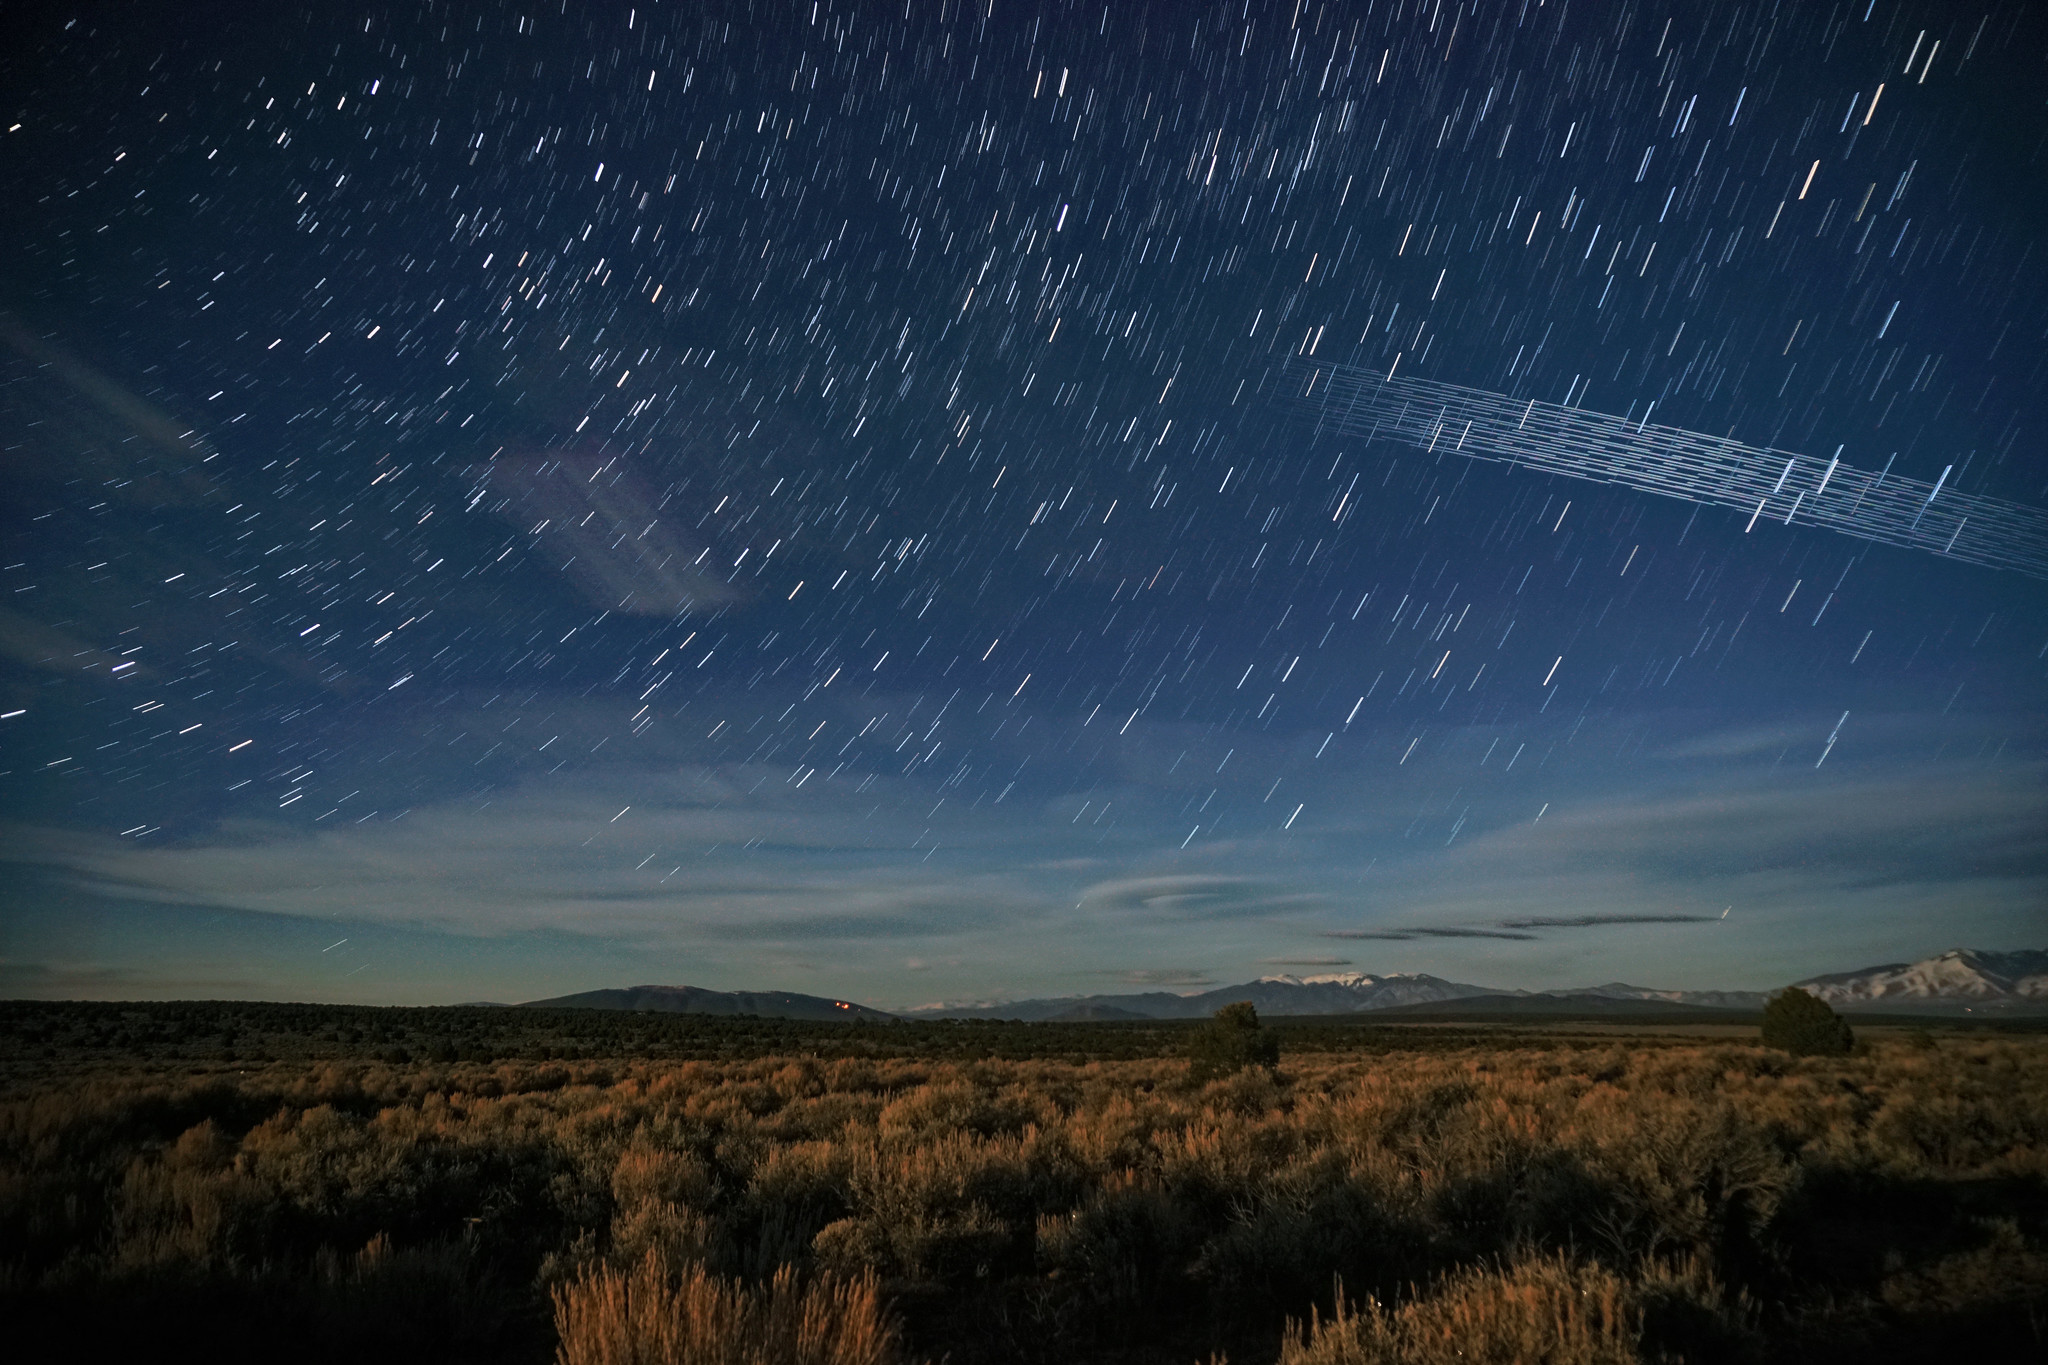 Satellite Megaconstellations and the Night Sky Image